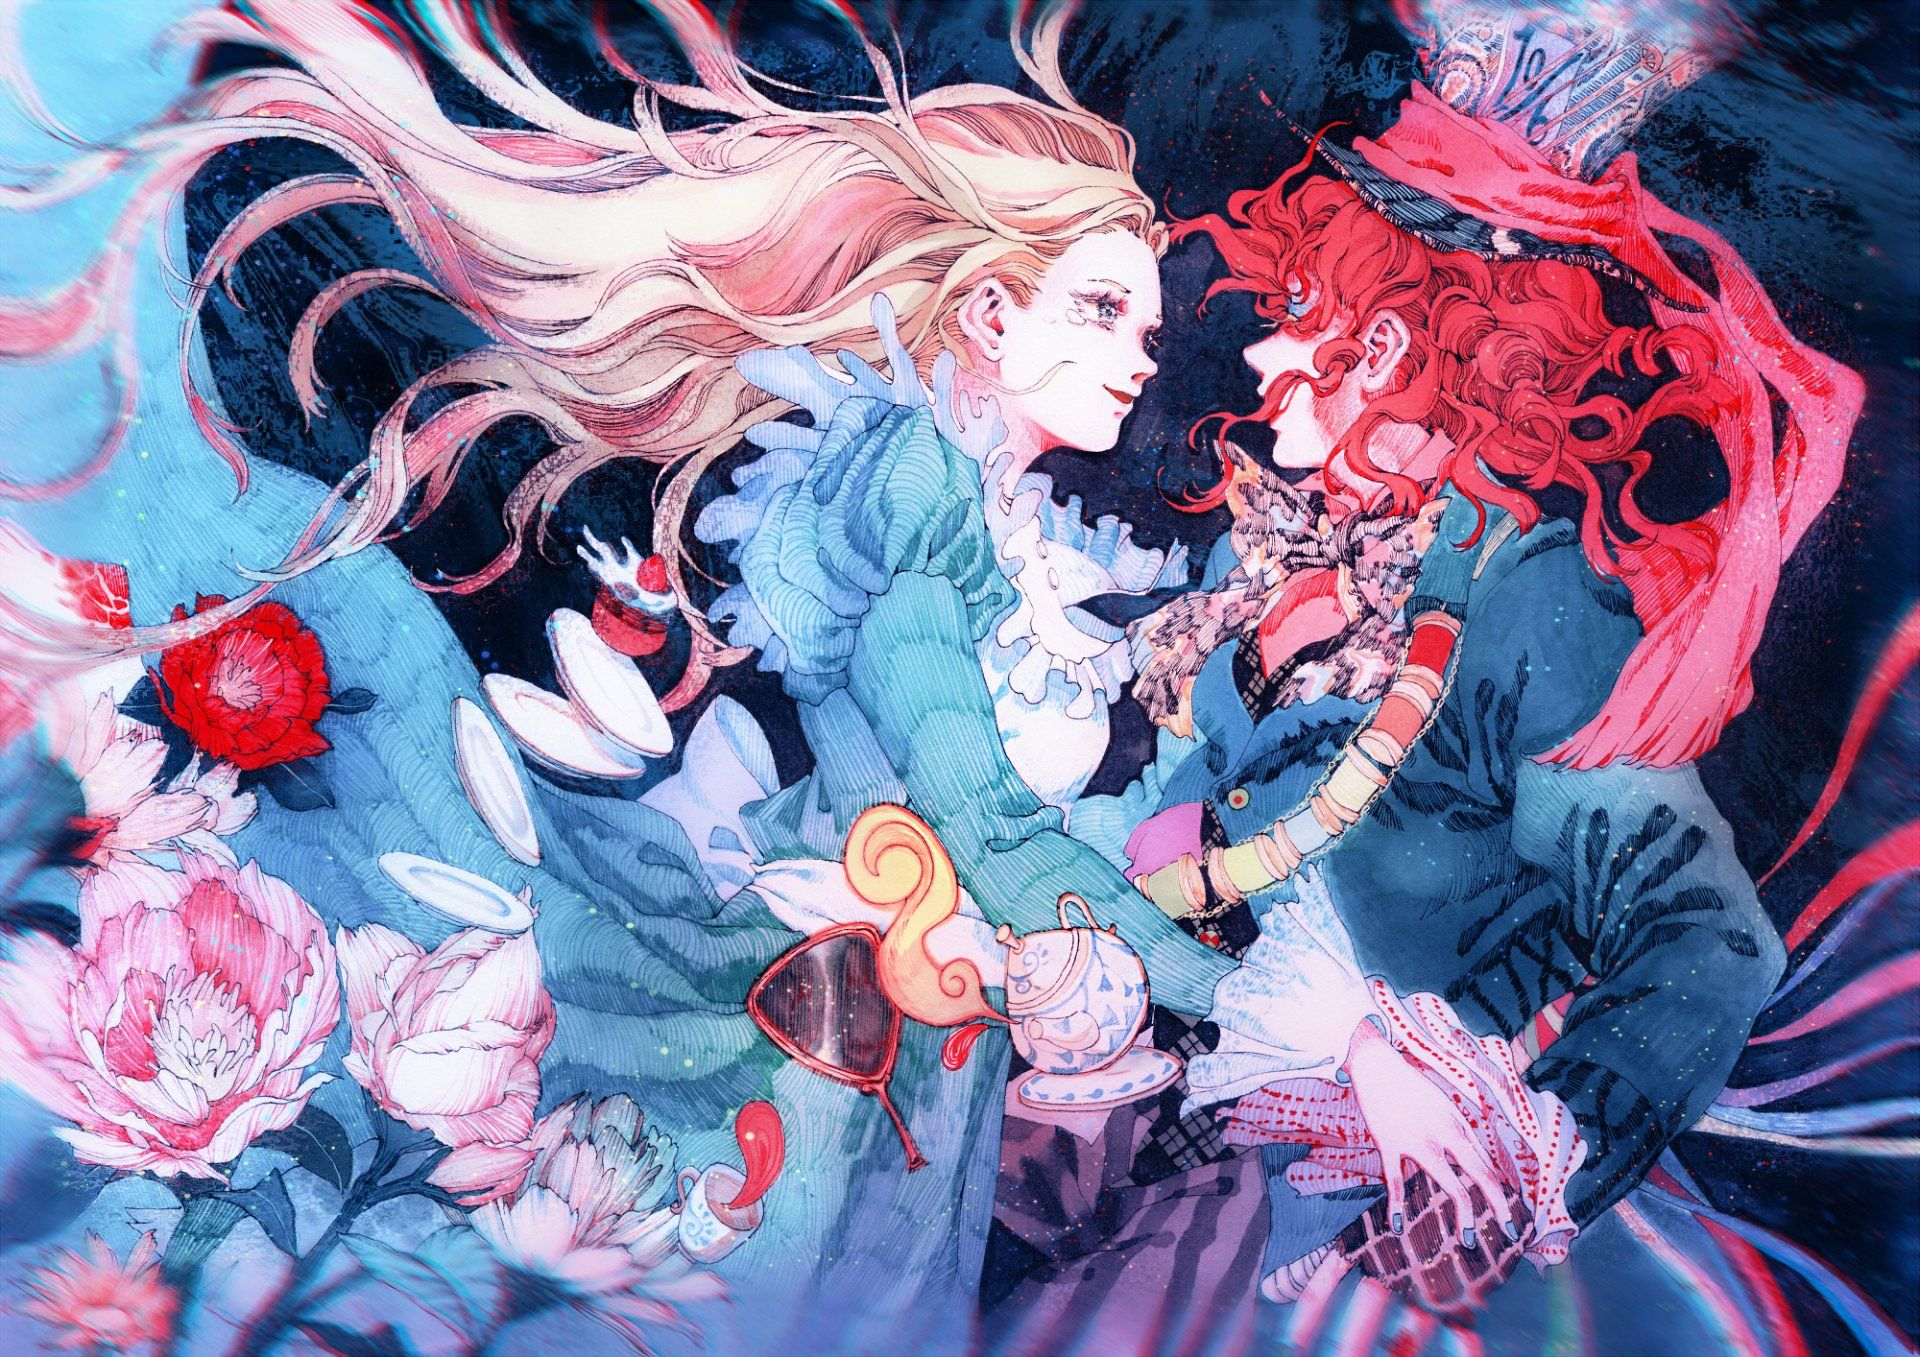 Anime Alice In Wonderland Mad Hatter Alice Alice In Wonderland